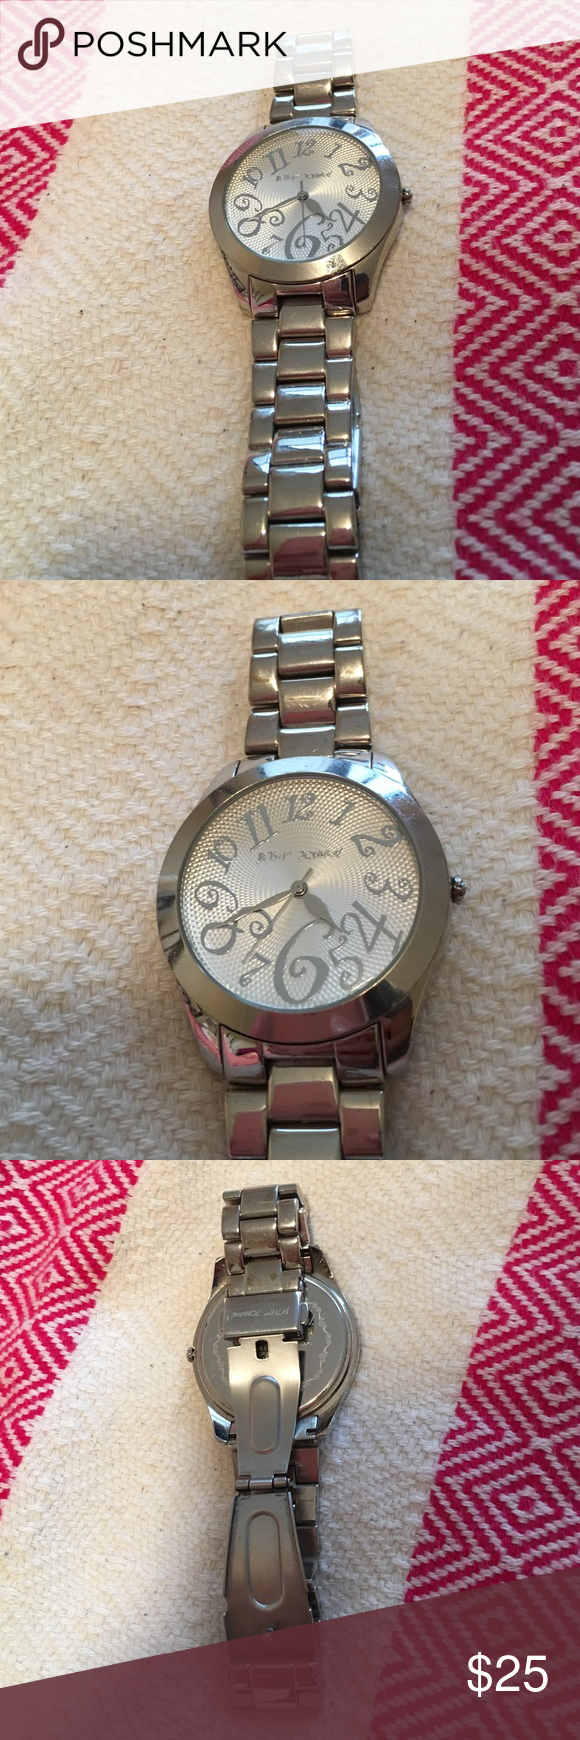 Betsy Johnson stainless steel watch Betsy Johnson stainless steel watch. Water resistant. Working battery. Large face. Betsey Johnson Accessories Watches